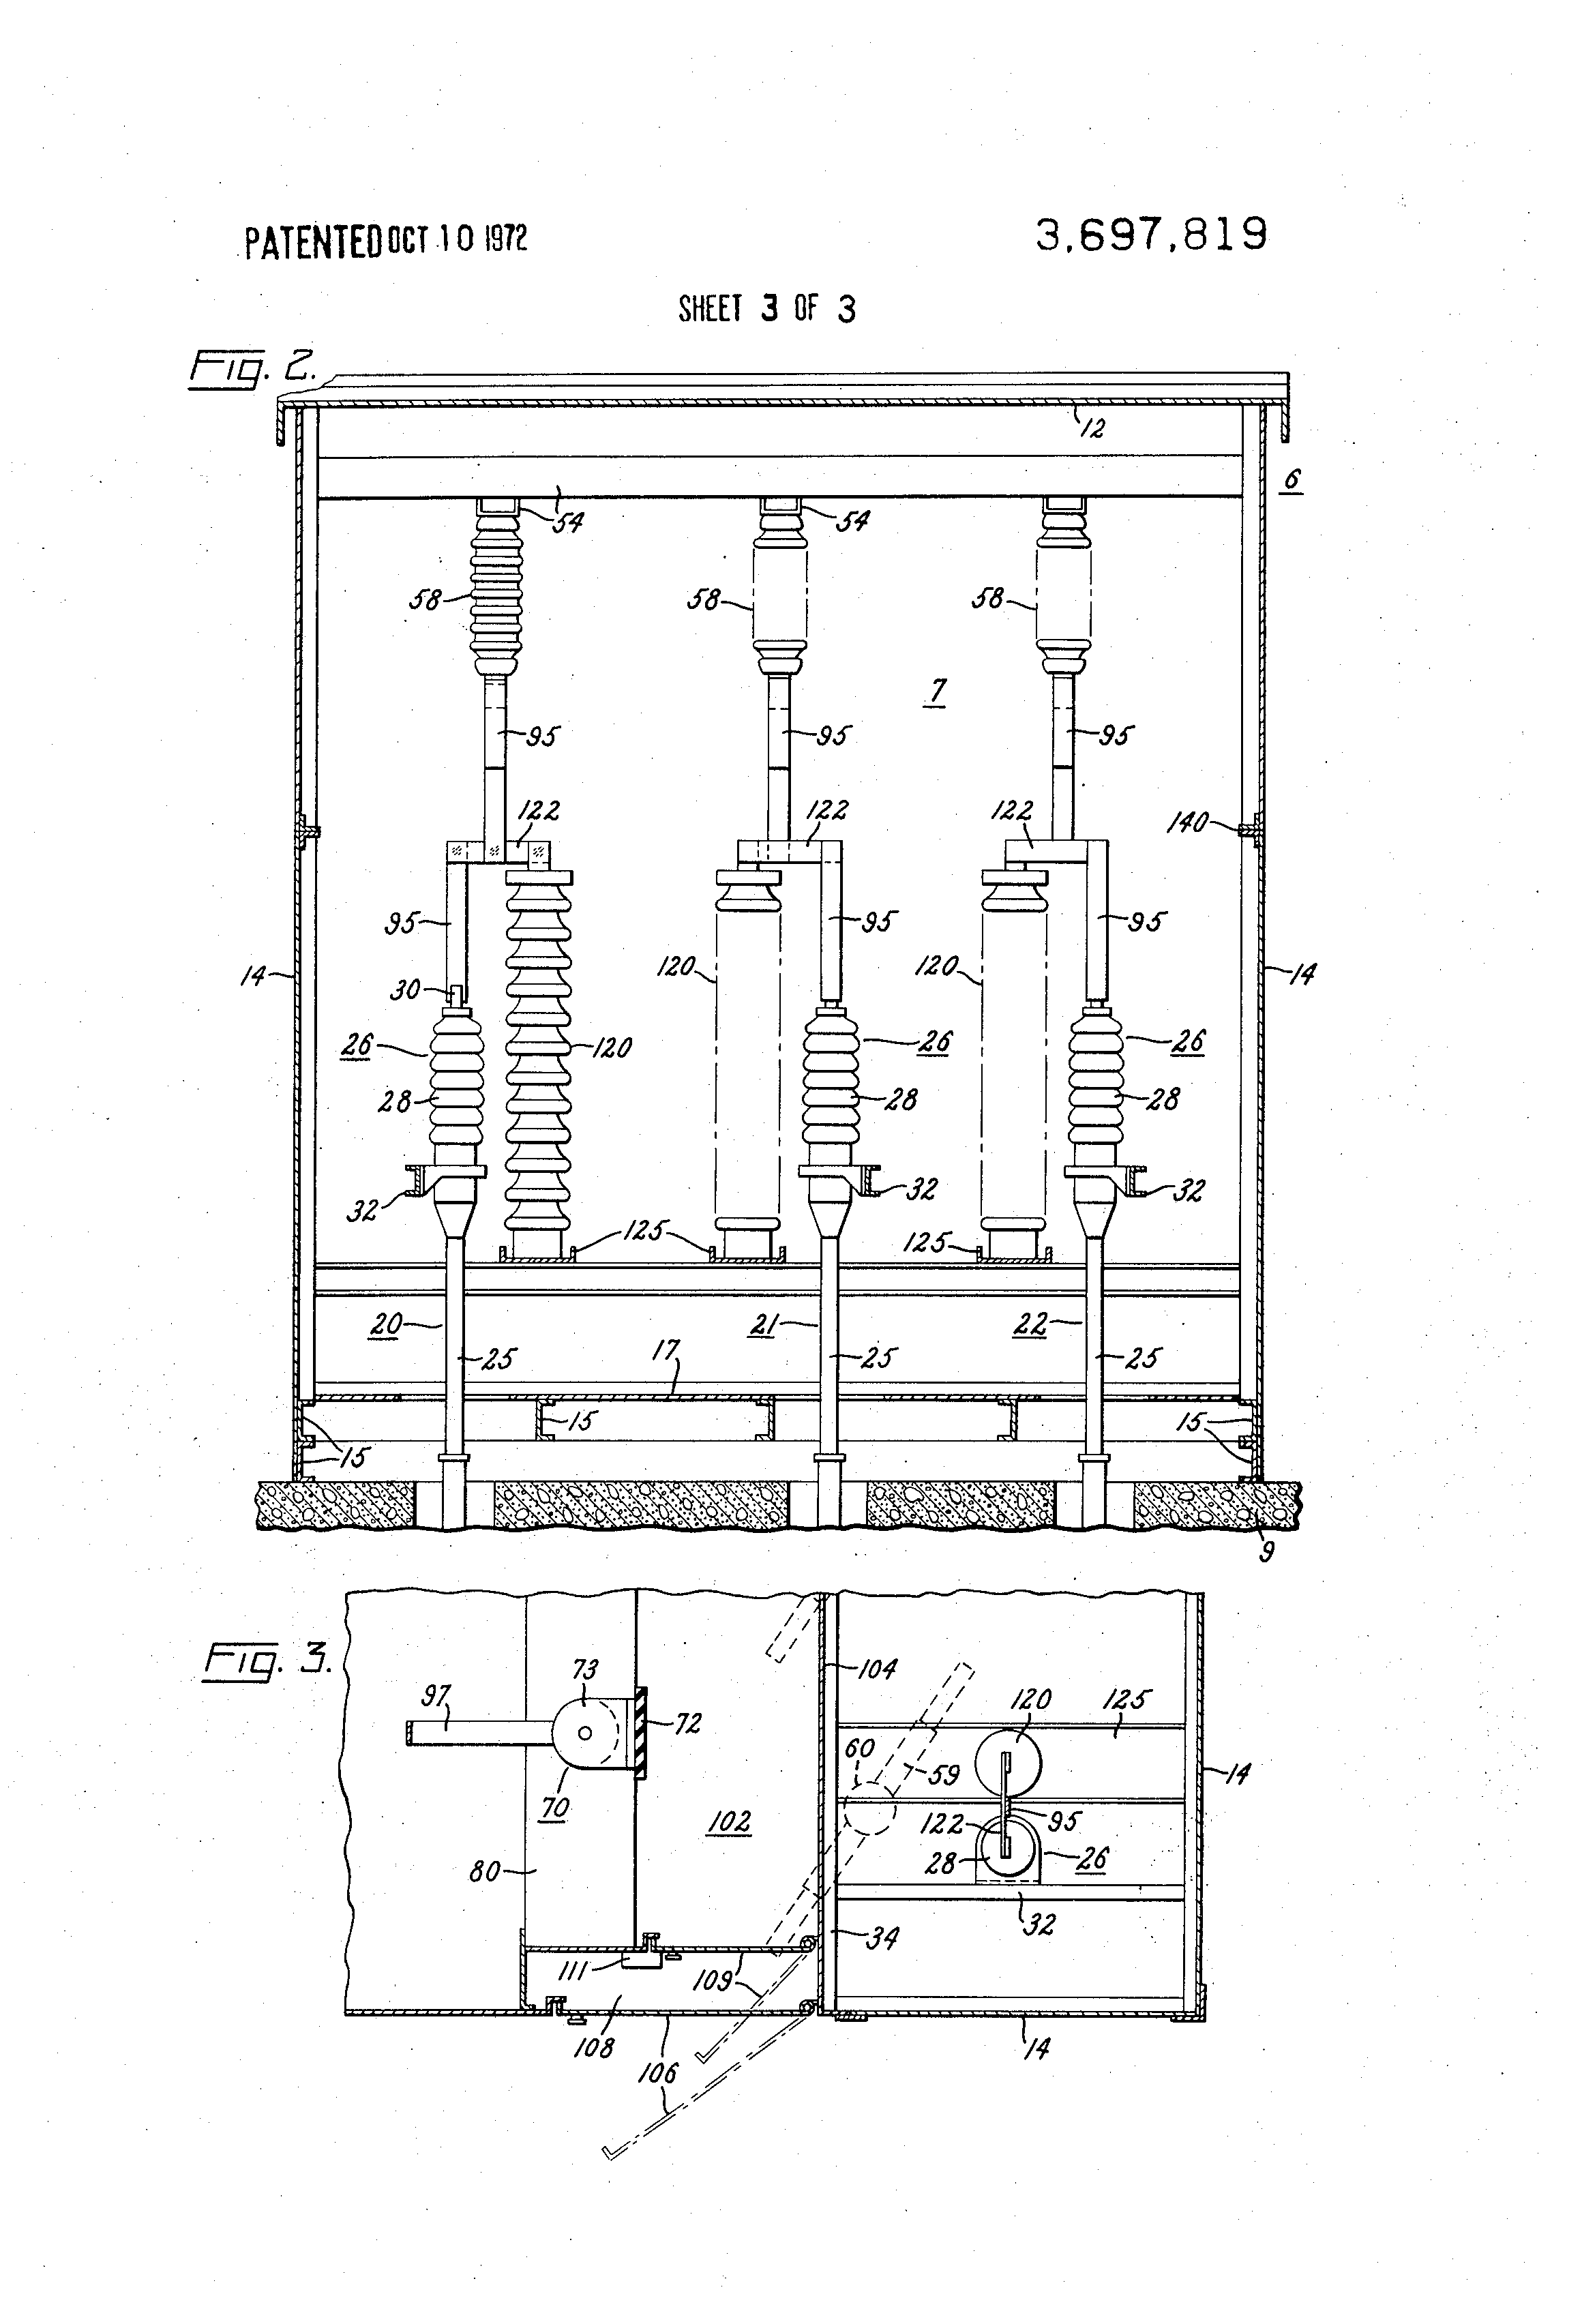 Test Instruments Electrical Diagrams Schematic Diagram